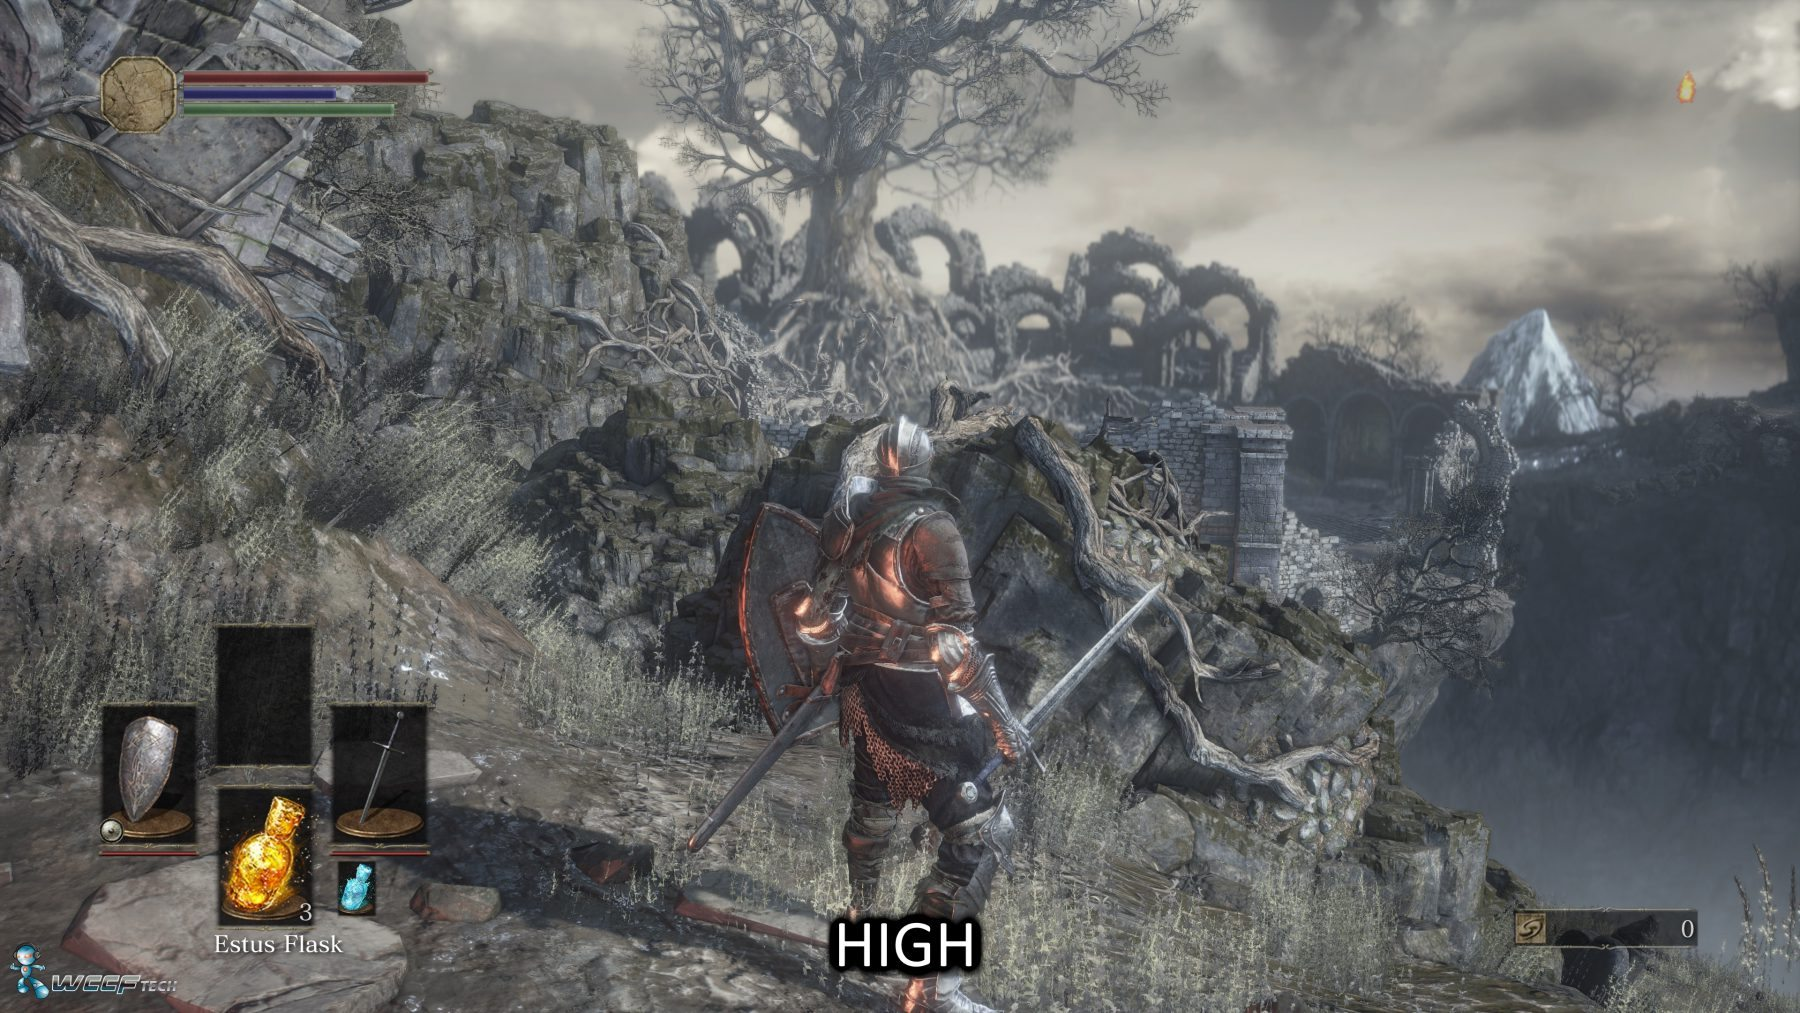 Dark Souls 3 high